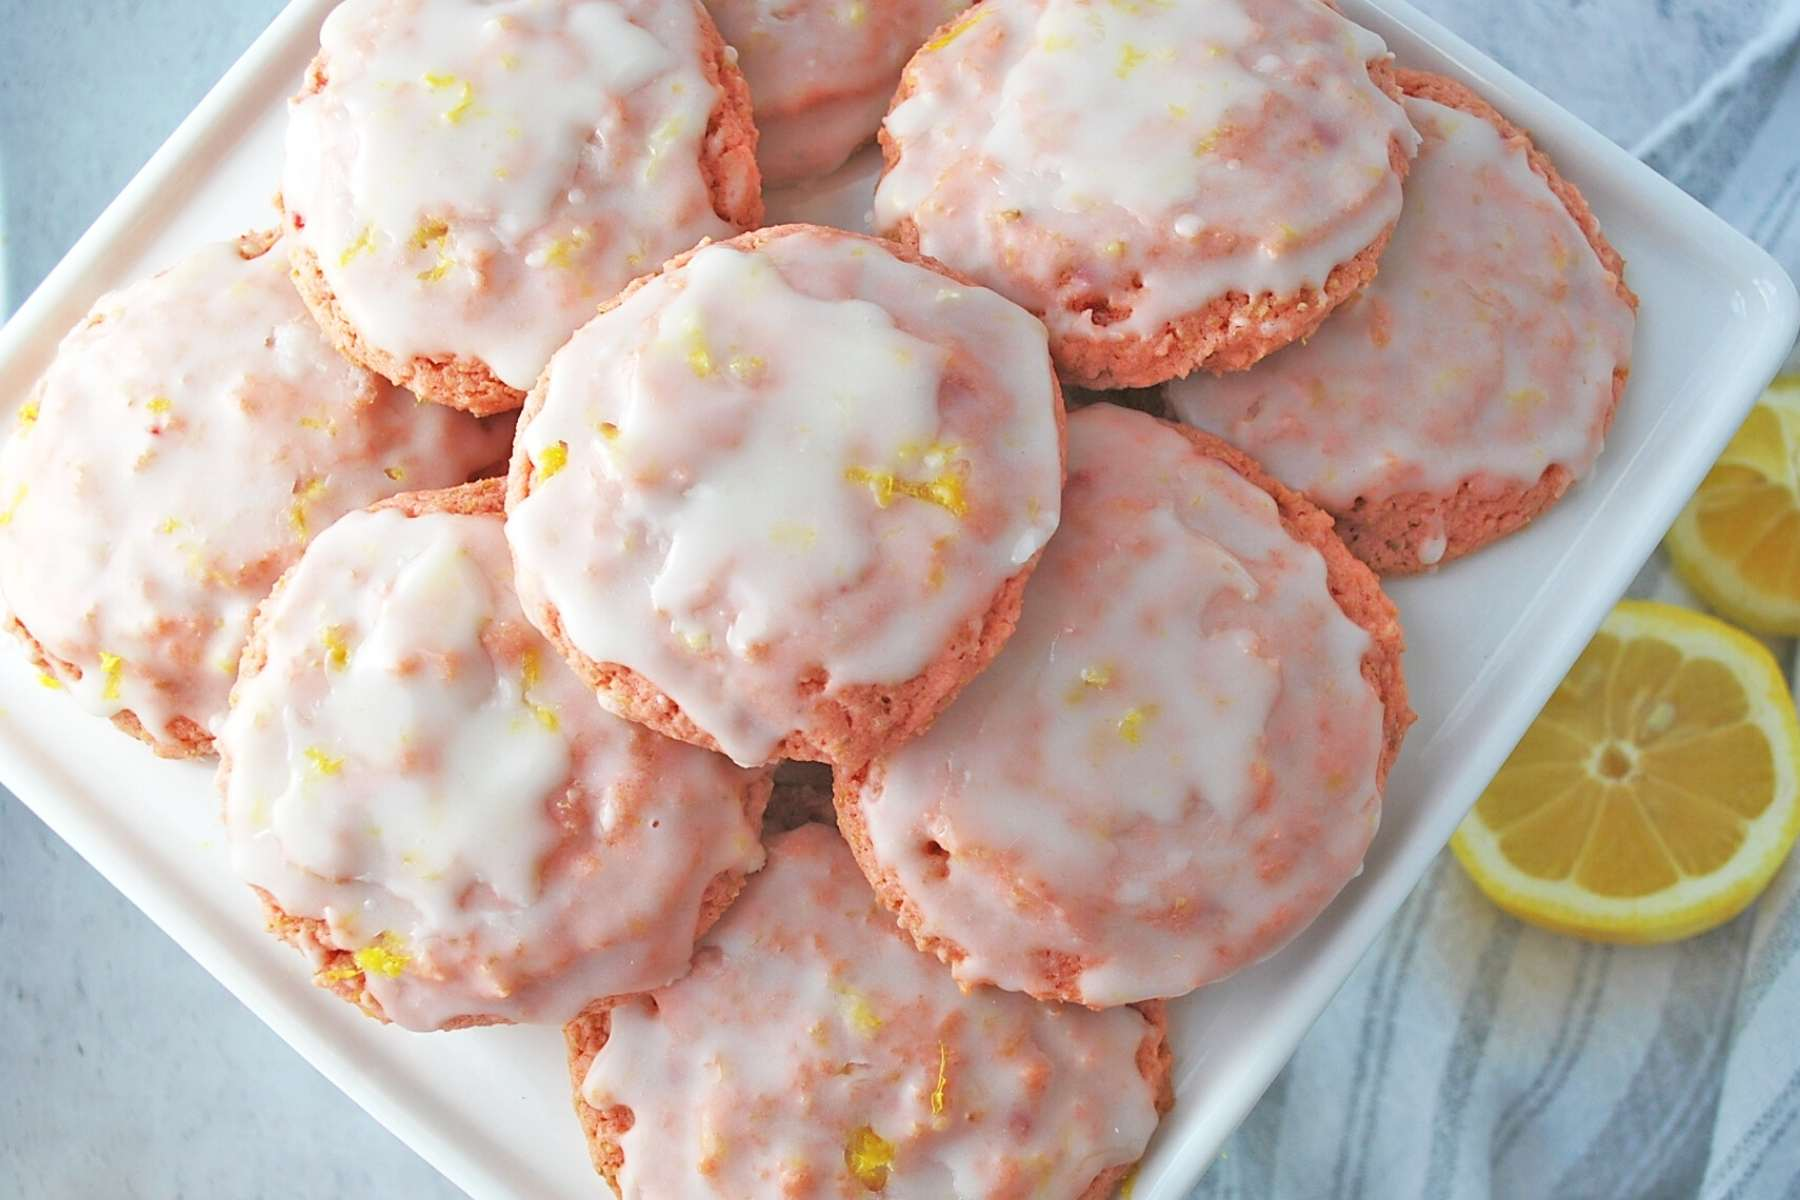 platter of strawberry glazed cookies with lemon